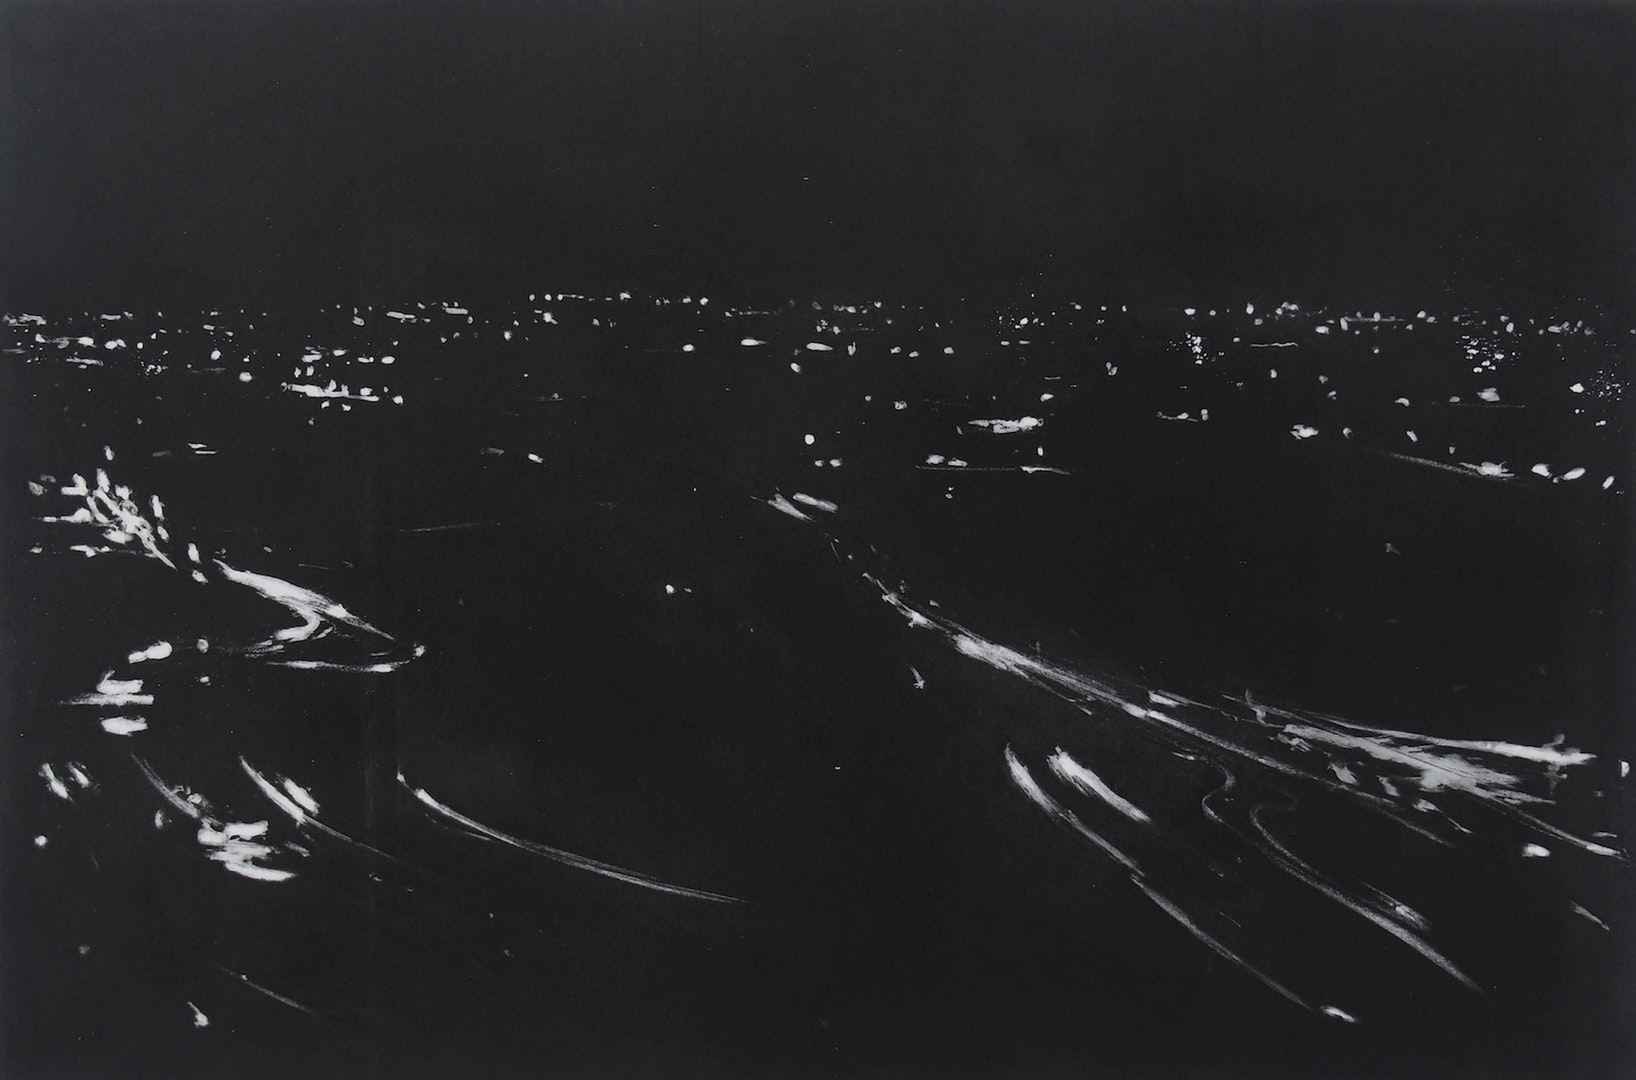 Francesco Poiana, 'Night Flux #4', Aquatint on paper, 200 x 160 cm,  https://francescopoiana.com